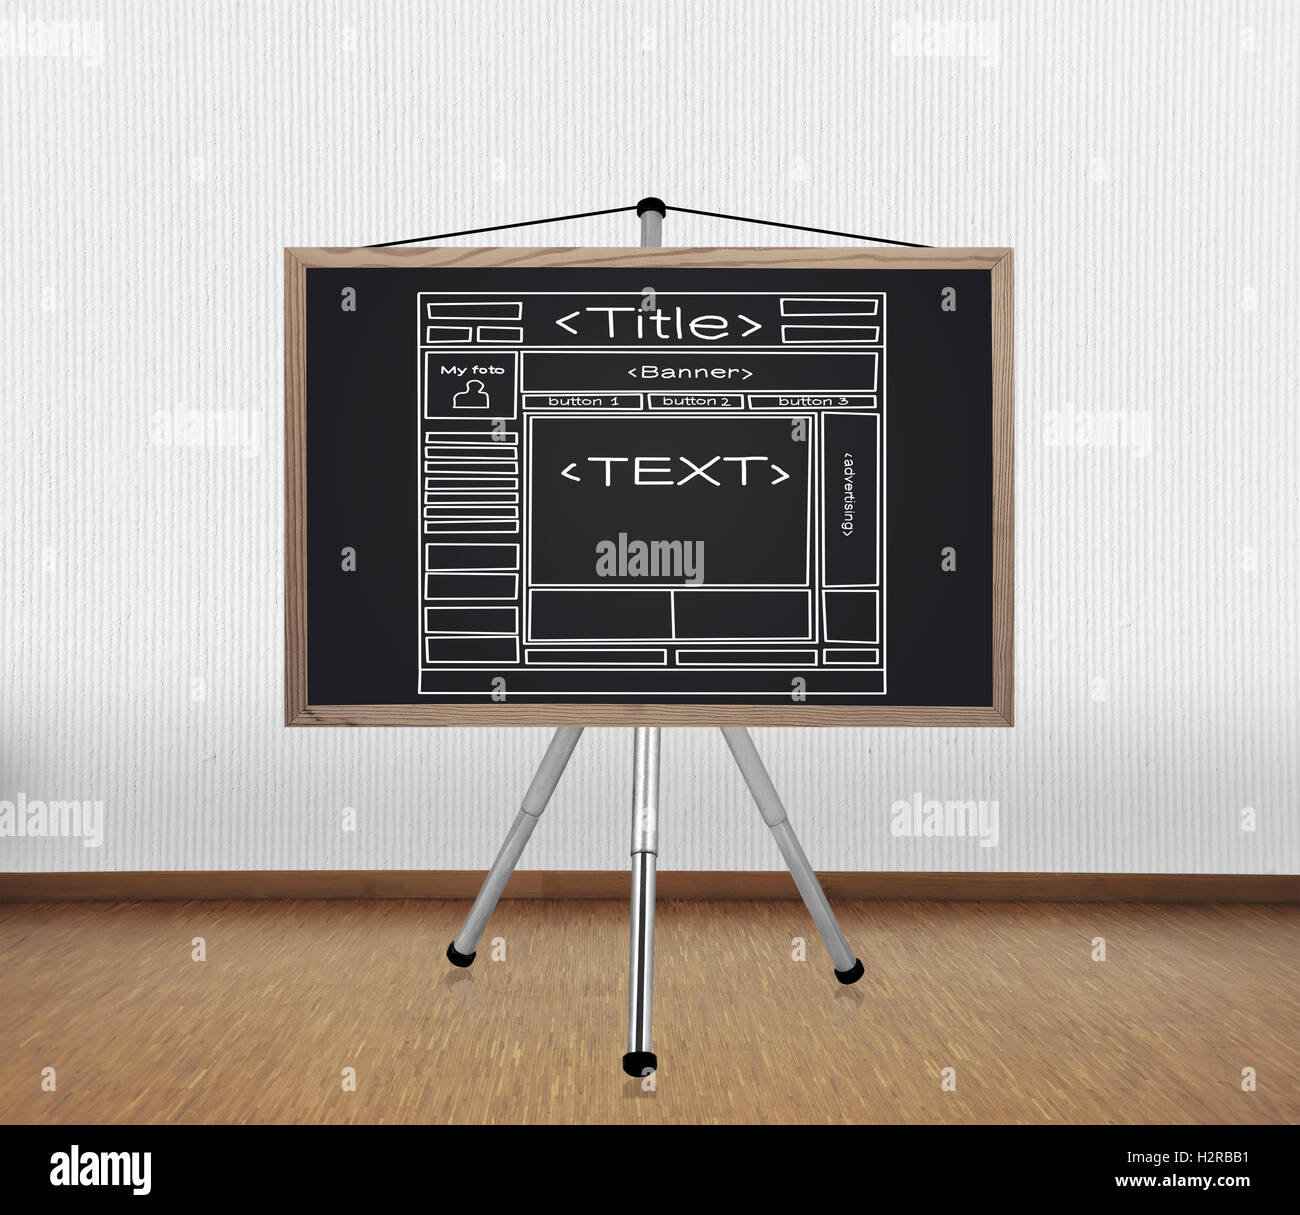 blackboard with template website Stock Photo: 122215717 - Alamy